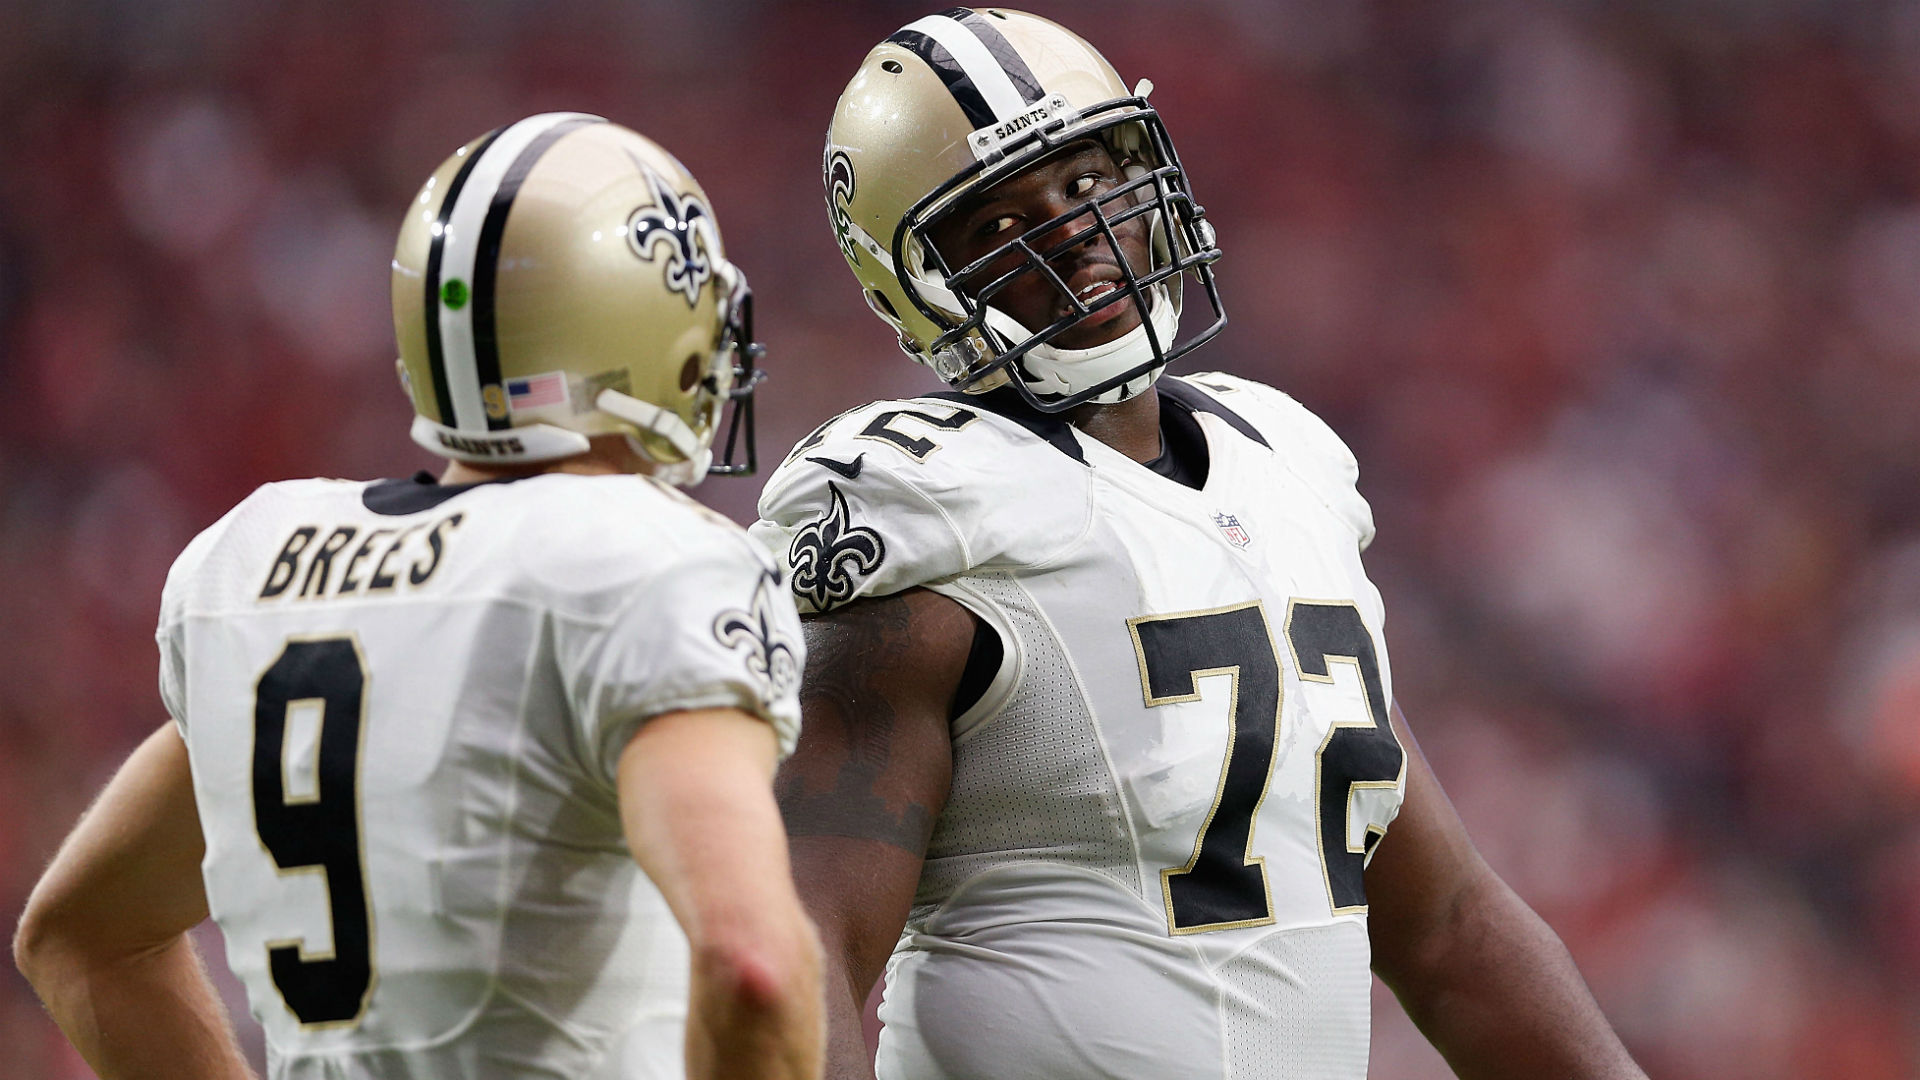 Saints OT Terron Armstead to undergo surgery on torn labrum